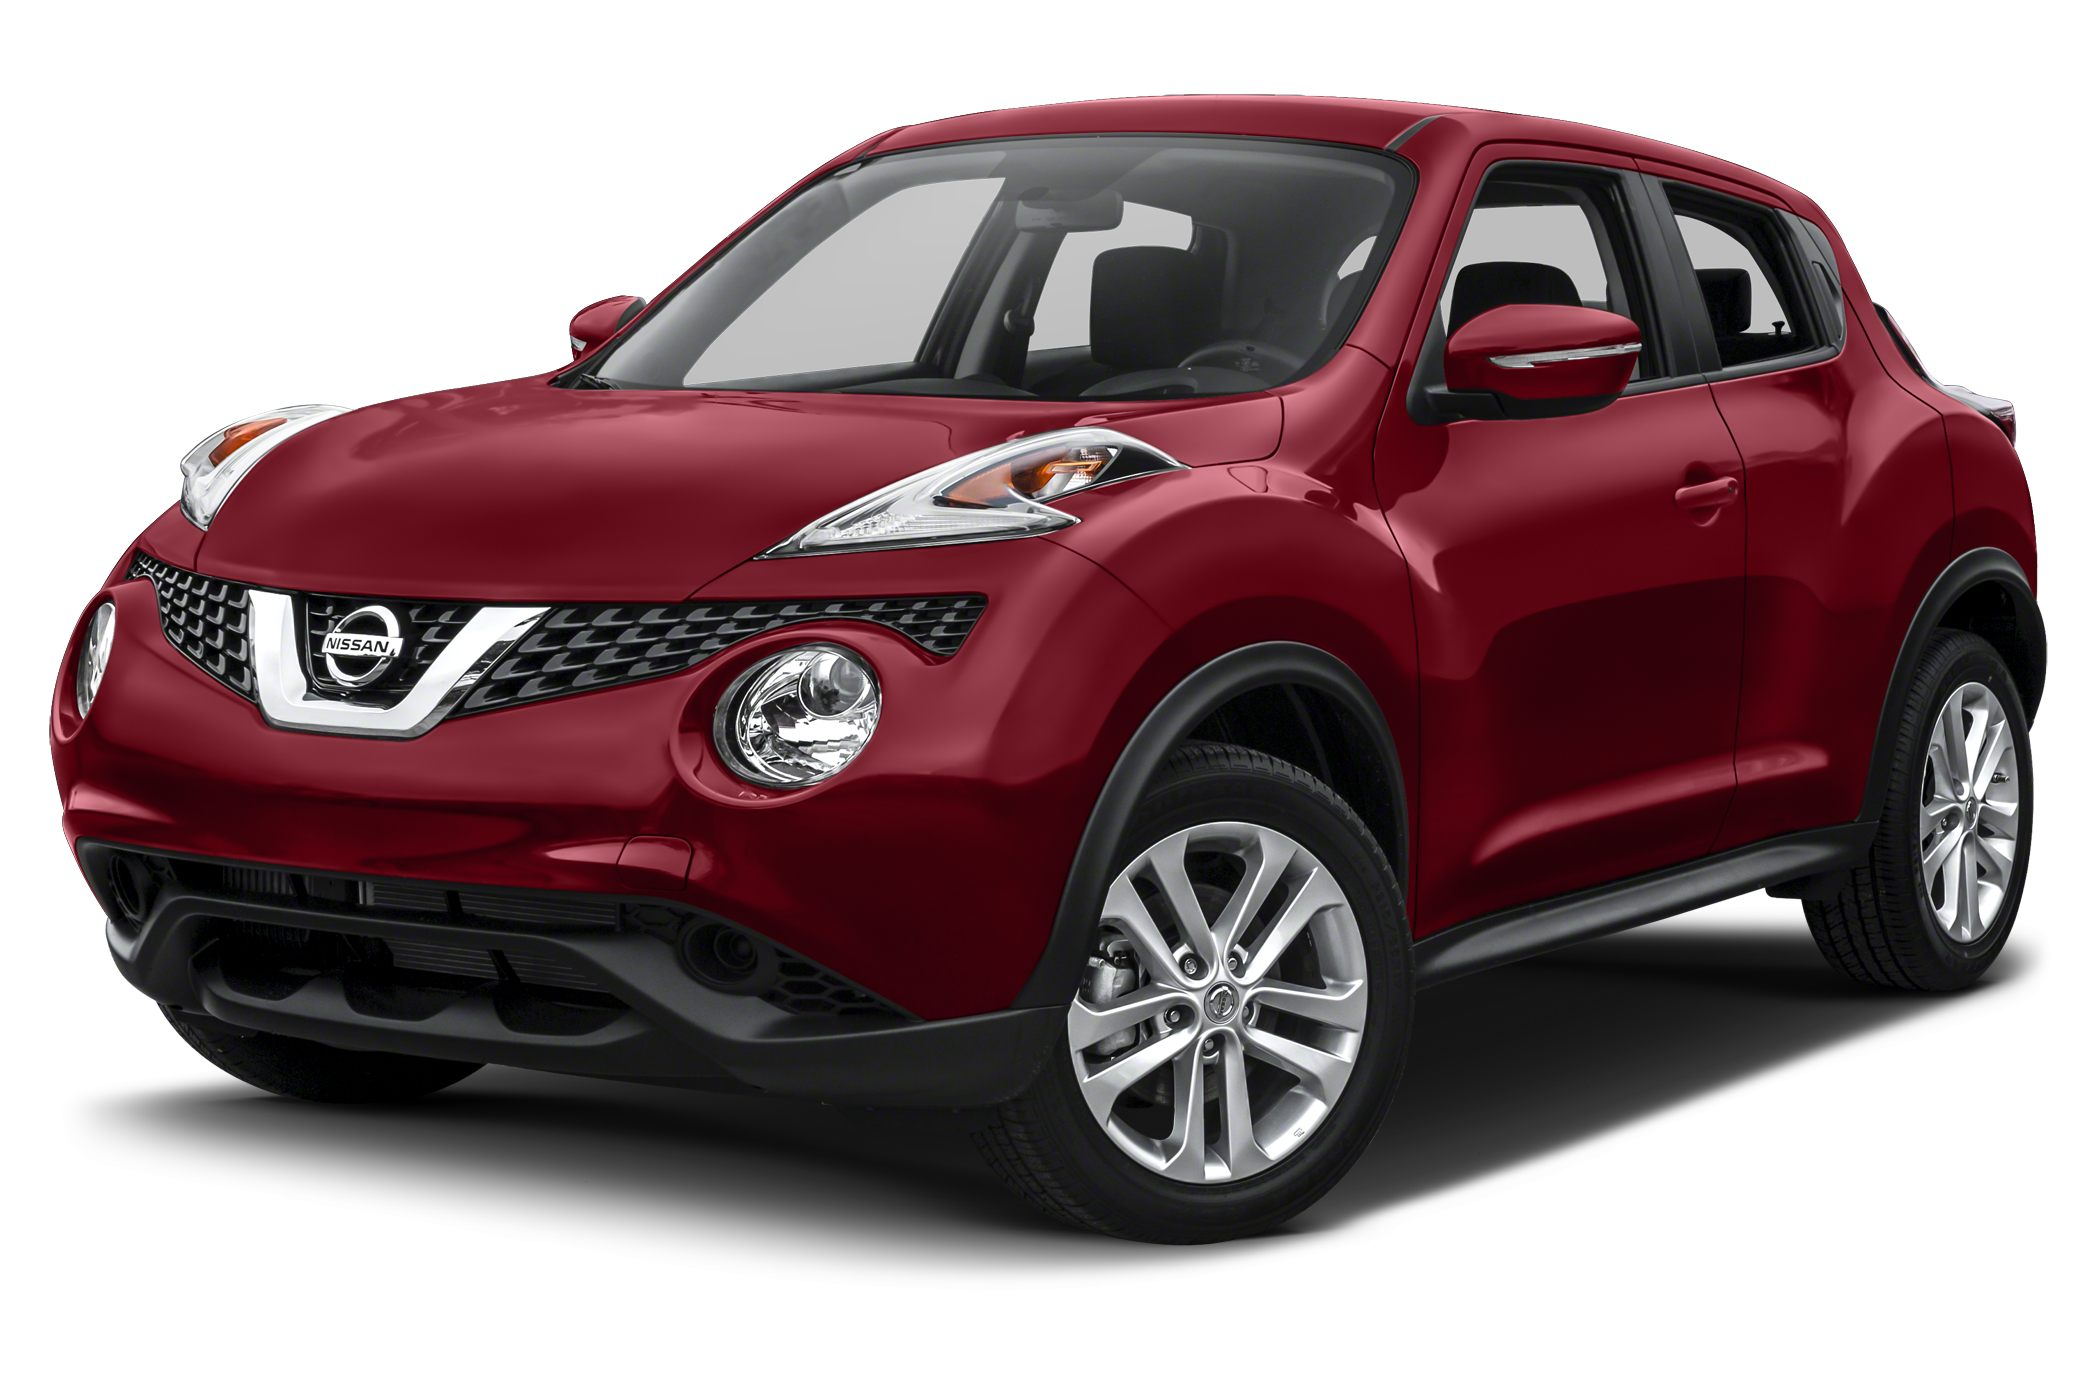 Nissan Juke News, Photos and Buying Information - Autoblog